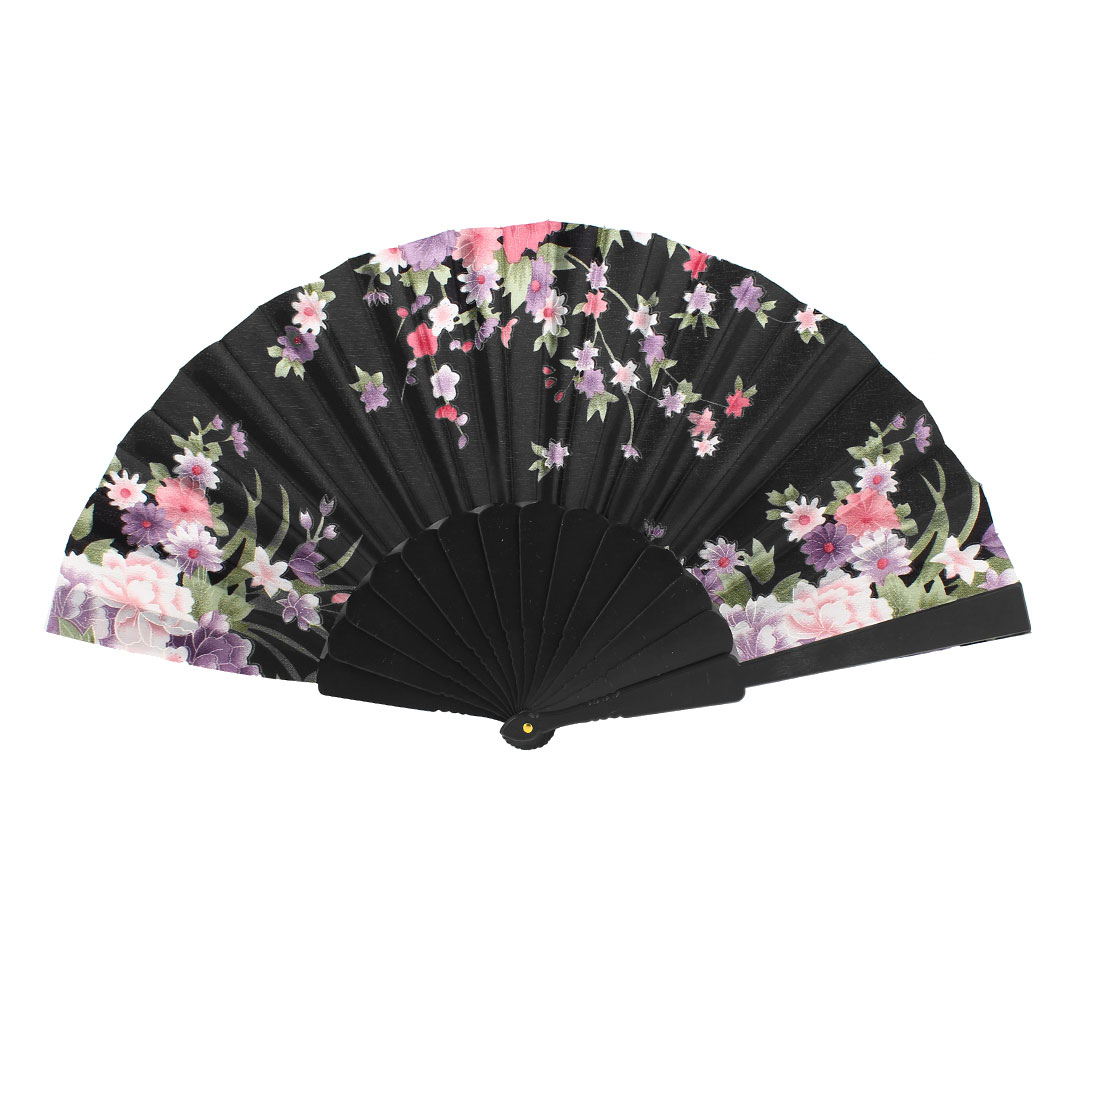 "Black Plastic 16.5"" Folding Hand Fan Polyester Flower Print Decor"